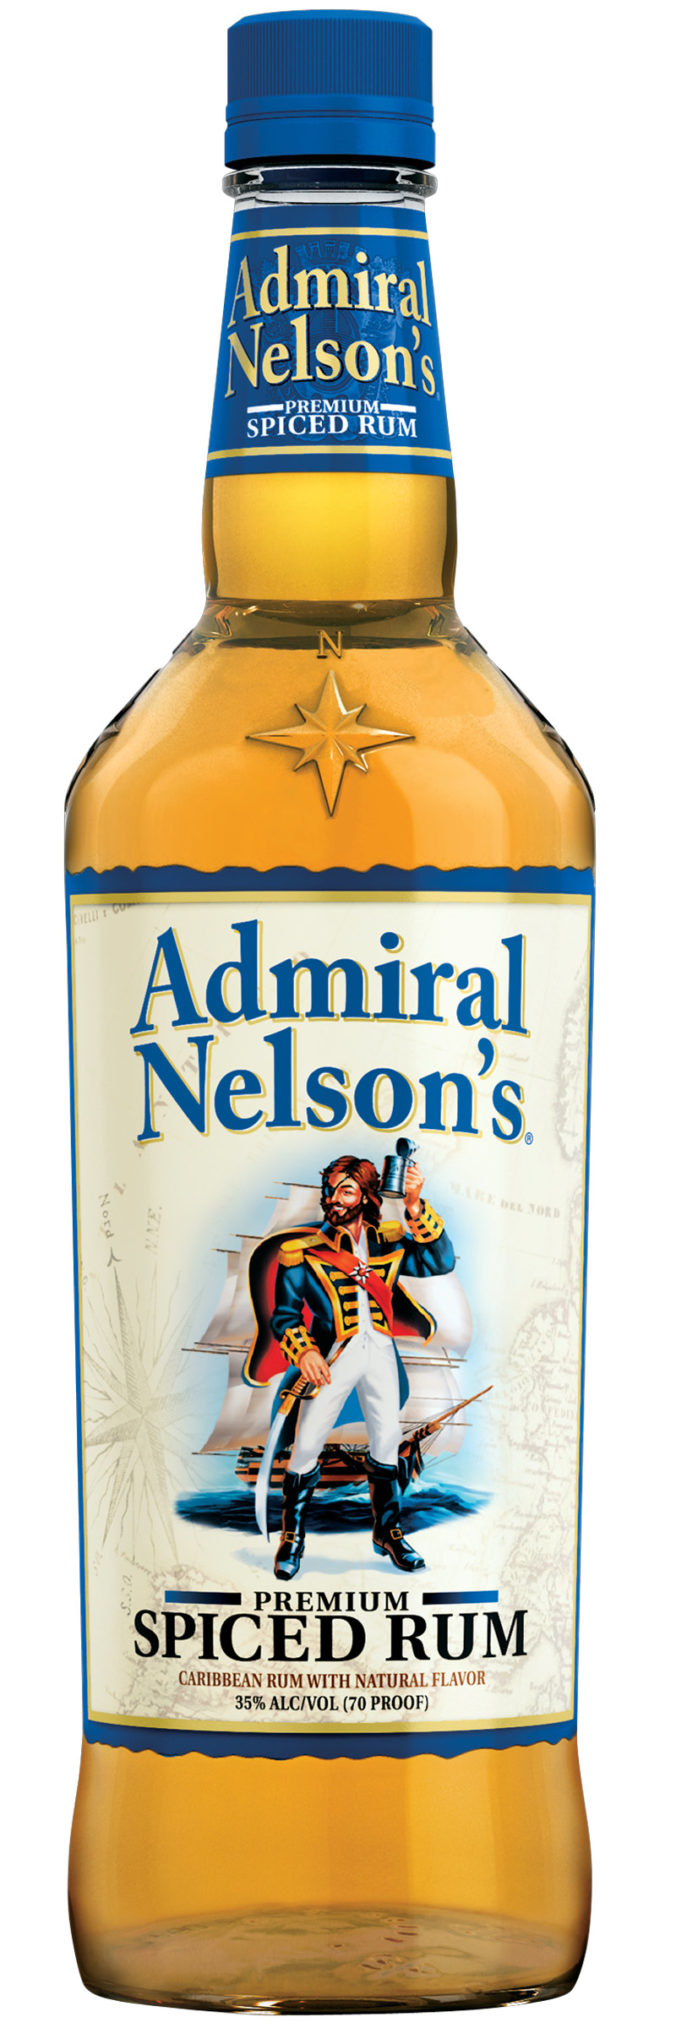 Admiral Nelson Spiced rum from US Virgin Islands